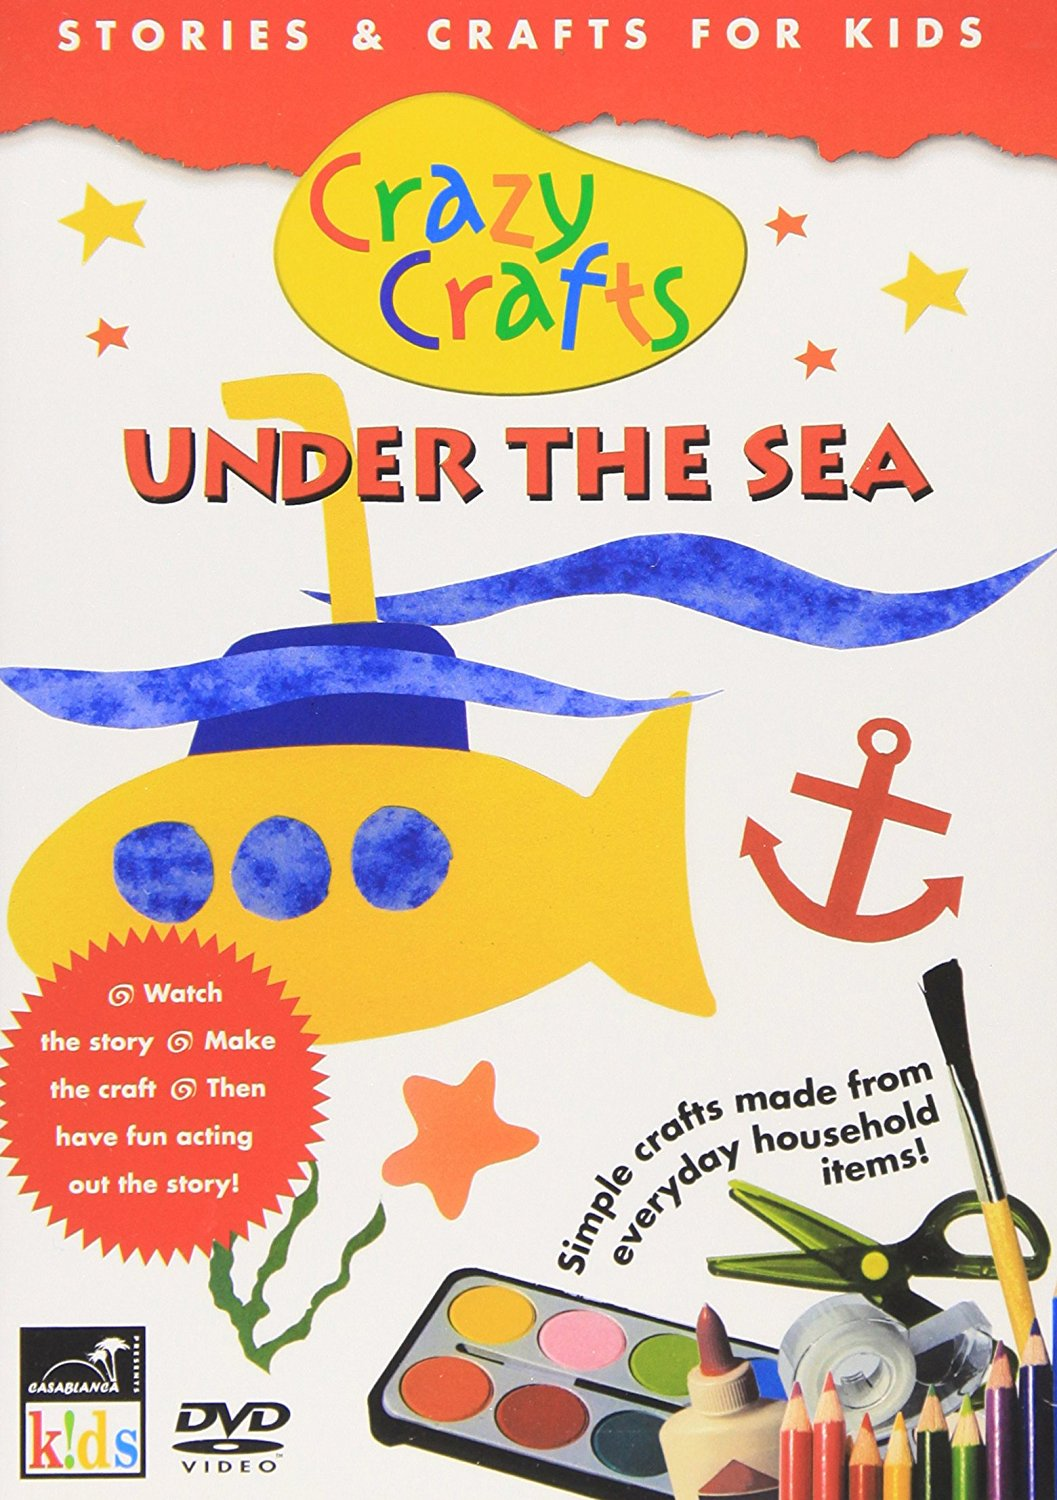 Under The Sea - Stories And Crafts For Kids by Crazy Crafts